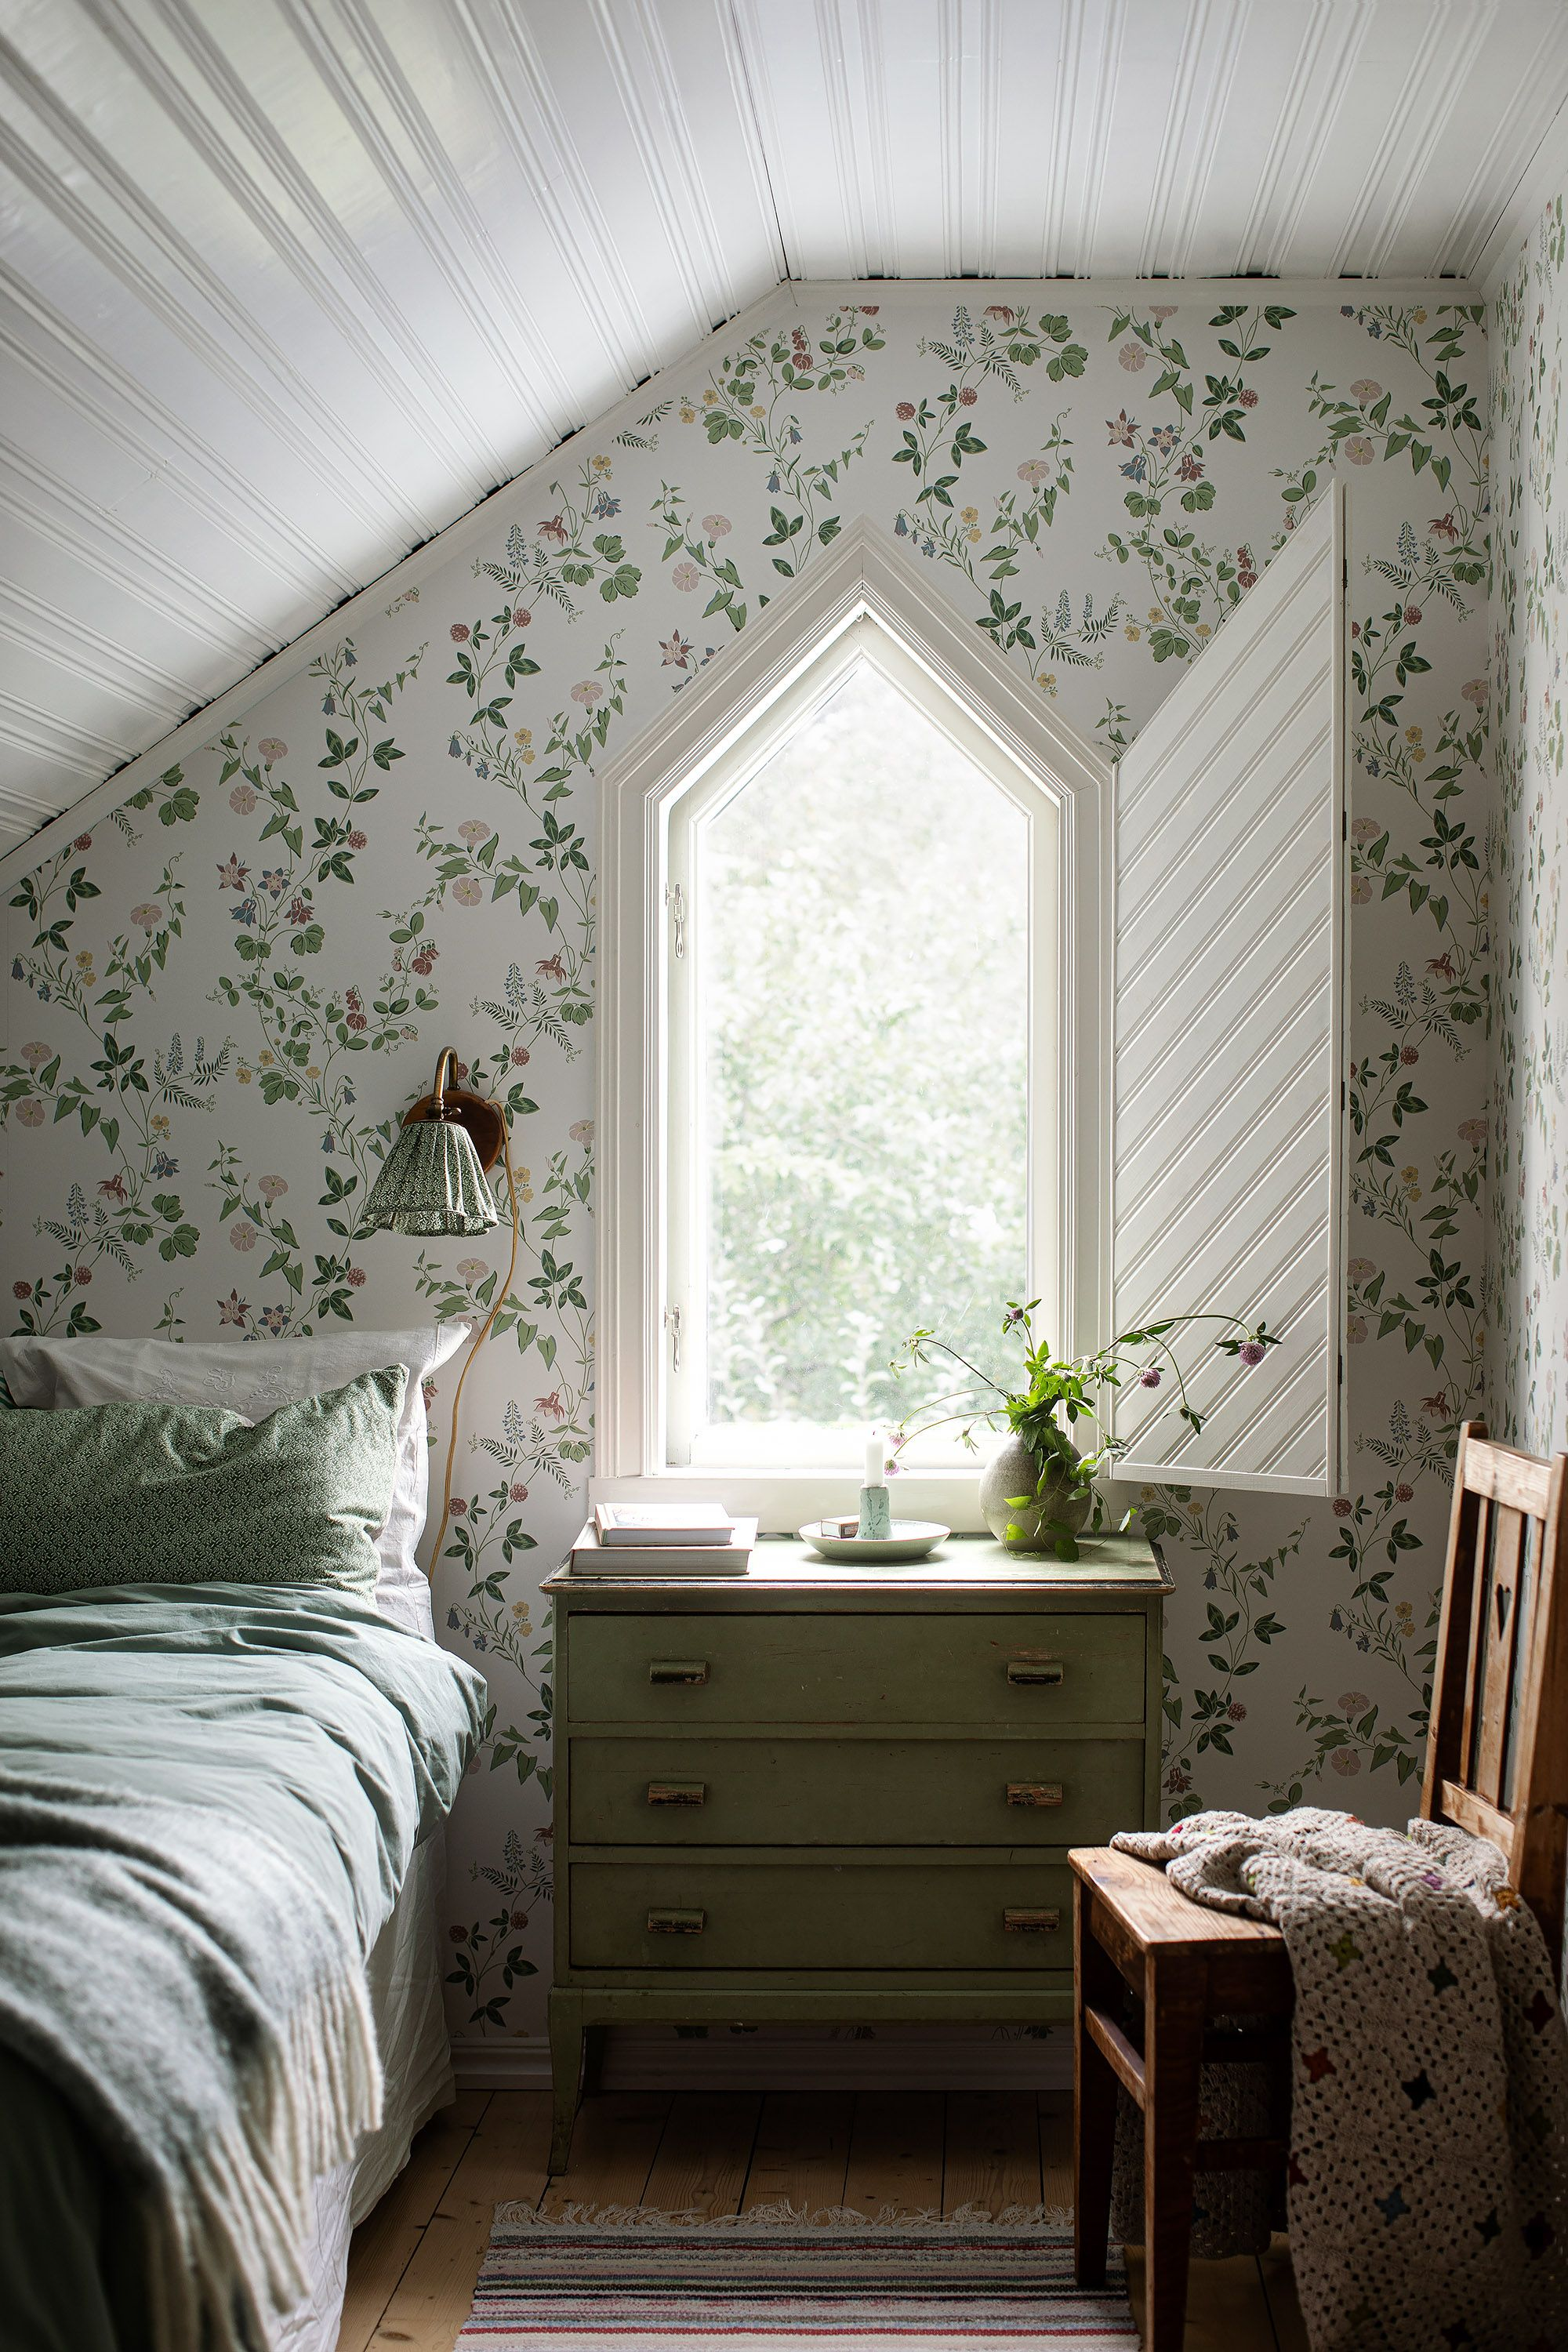 The stunning floral pattern of our Midsummer Eve wallpaper